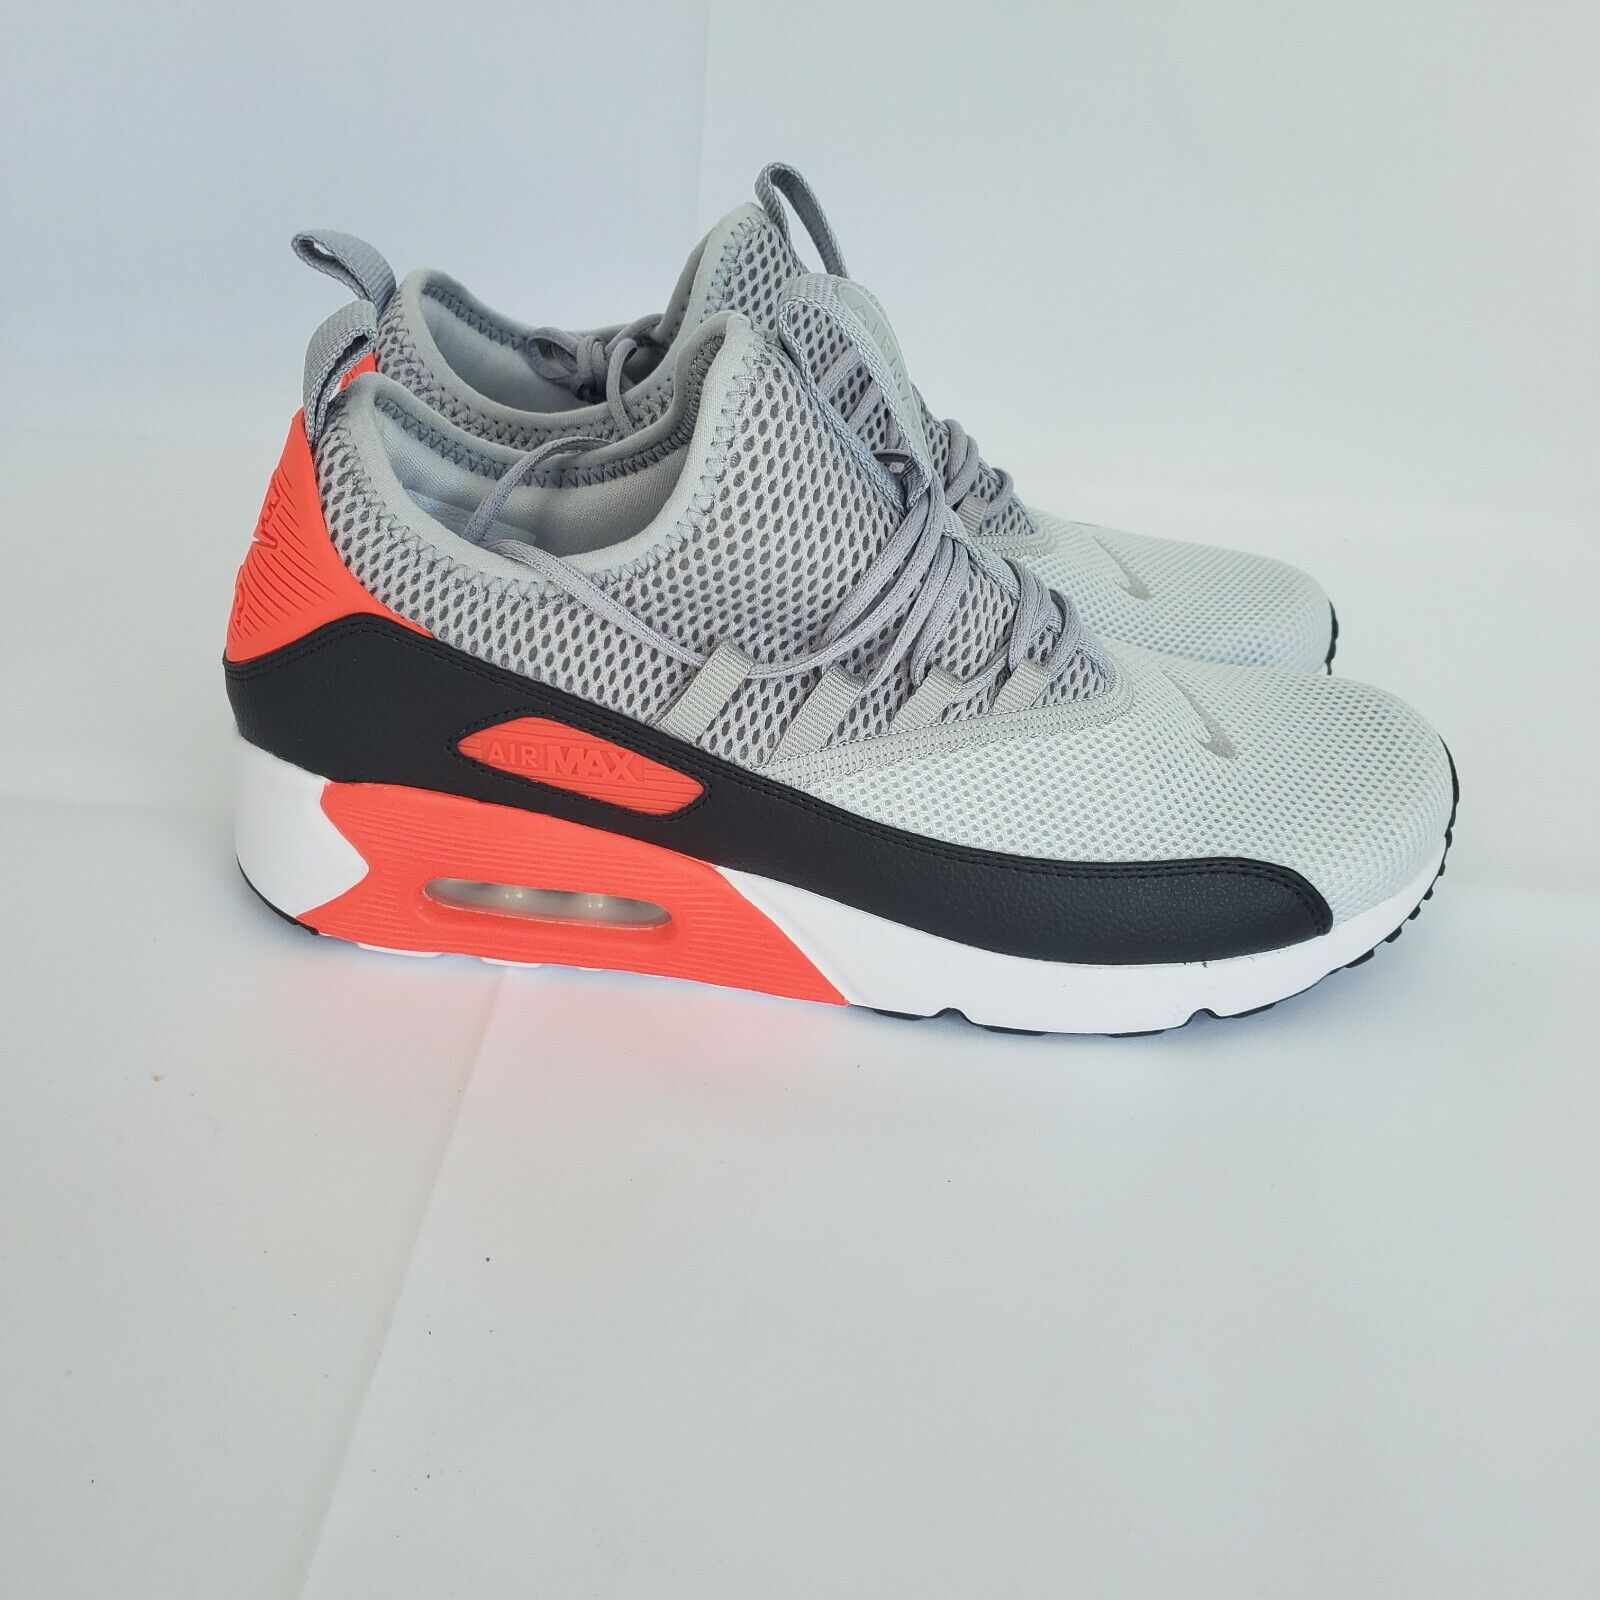 Nike Air Max 90 EZ Shoes Mens Size 11 Wolf Grey Bright